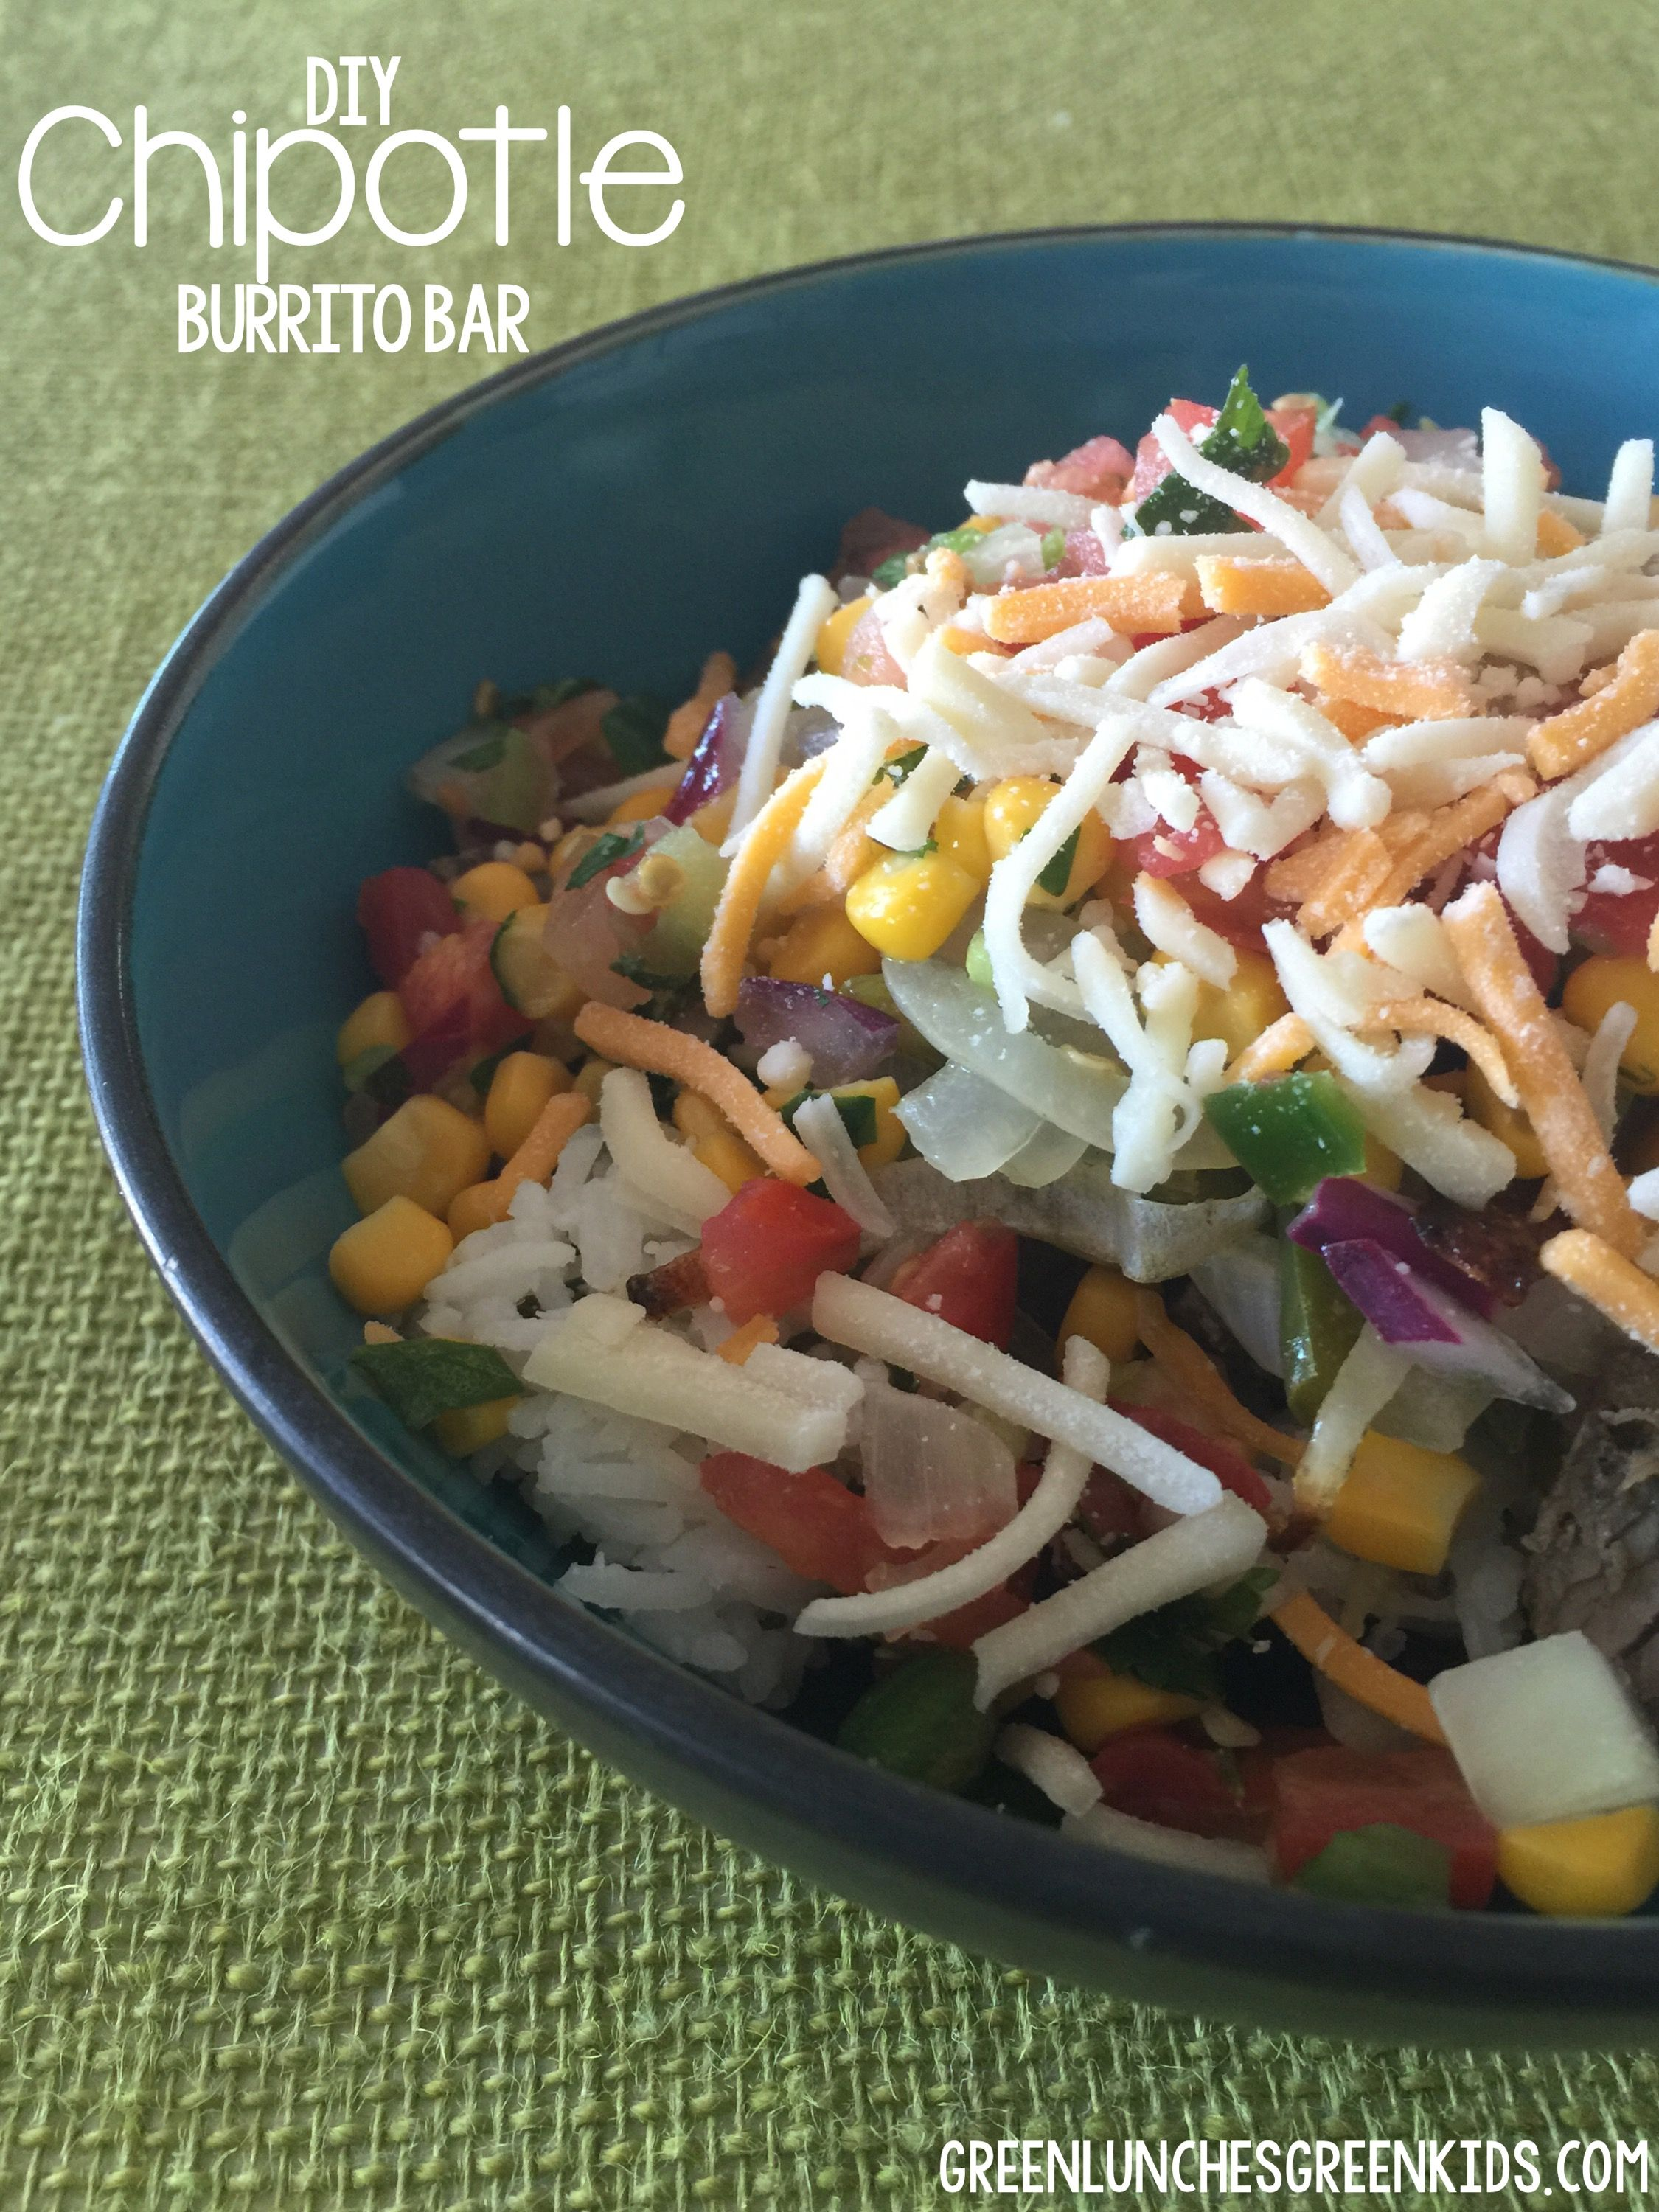 DIY Chipotle Burrito Bar at home. Dinner idea from Green Lunches ...